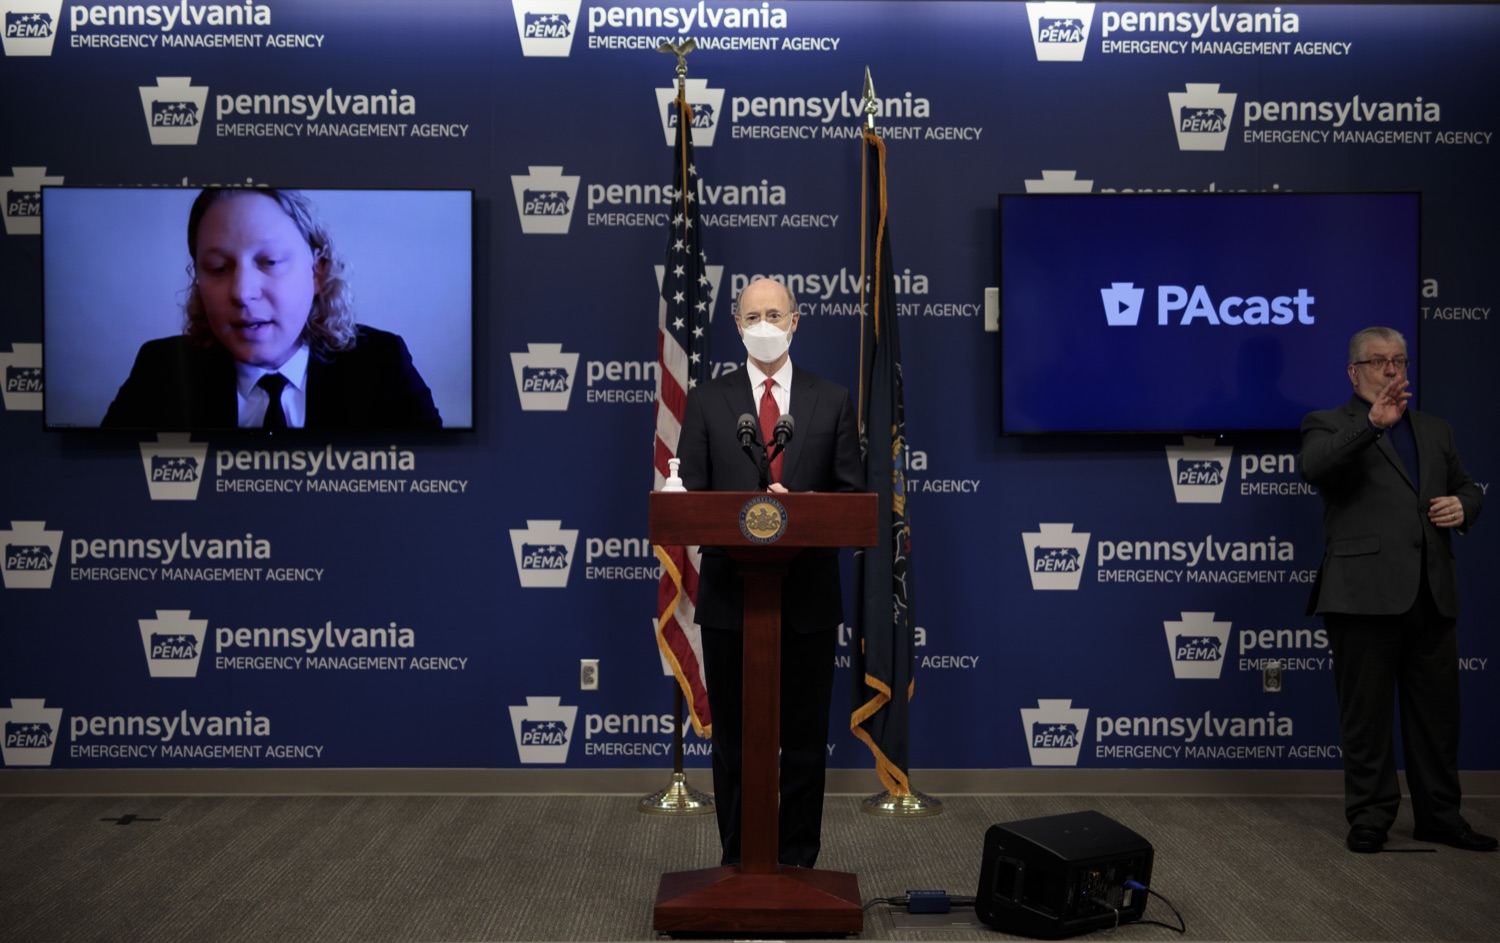 "<a href=""https://filesource.wostreaming.net/commonwealthofpa/photo/18540_gov_backtowork_dz_10.jpg"" target=""_blank"">⇣ Download Photo<br></a>Pennsylvania Governor Tom Wolf speaking at the press conference. The COVID-19 global pandemic has significantly affected Pennsylvania workers, businesses and communities. To bolster economic recovery efforts and position Pennsylvania for economic growth, Governor Tom Wolf today unveiled his Back to Work PA plan.   Harrisburg, PA  February 22, 2021"